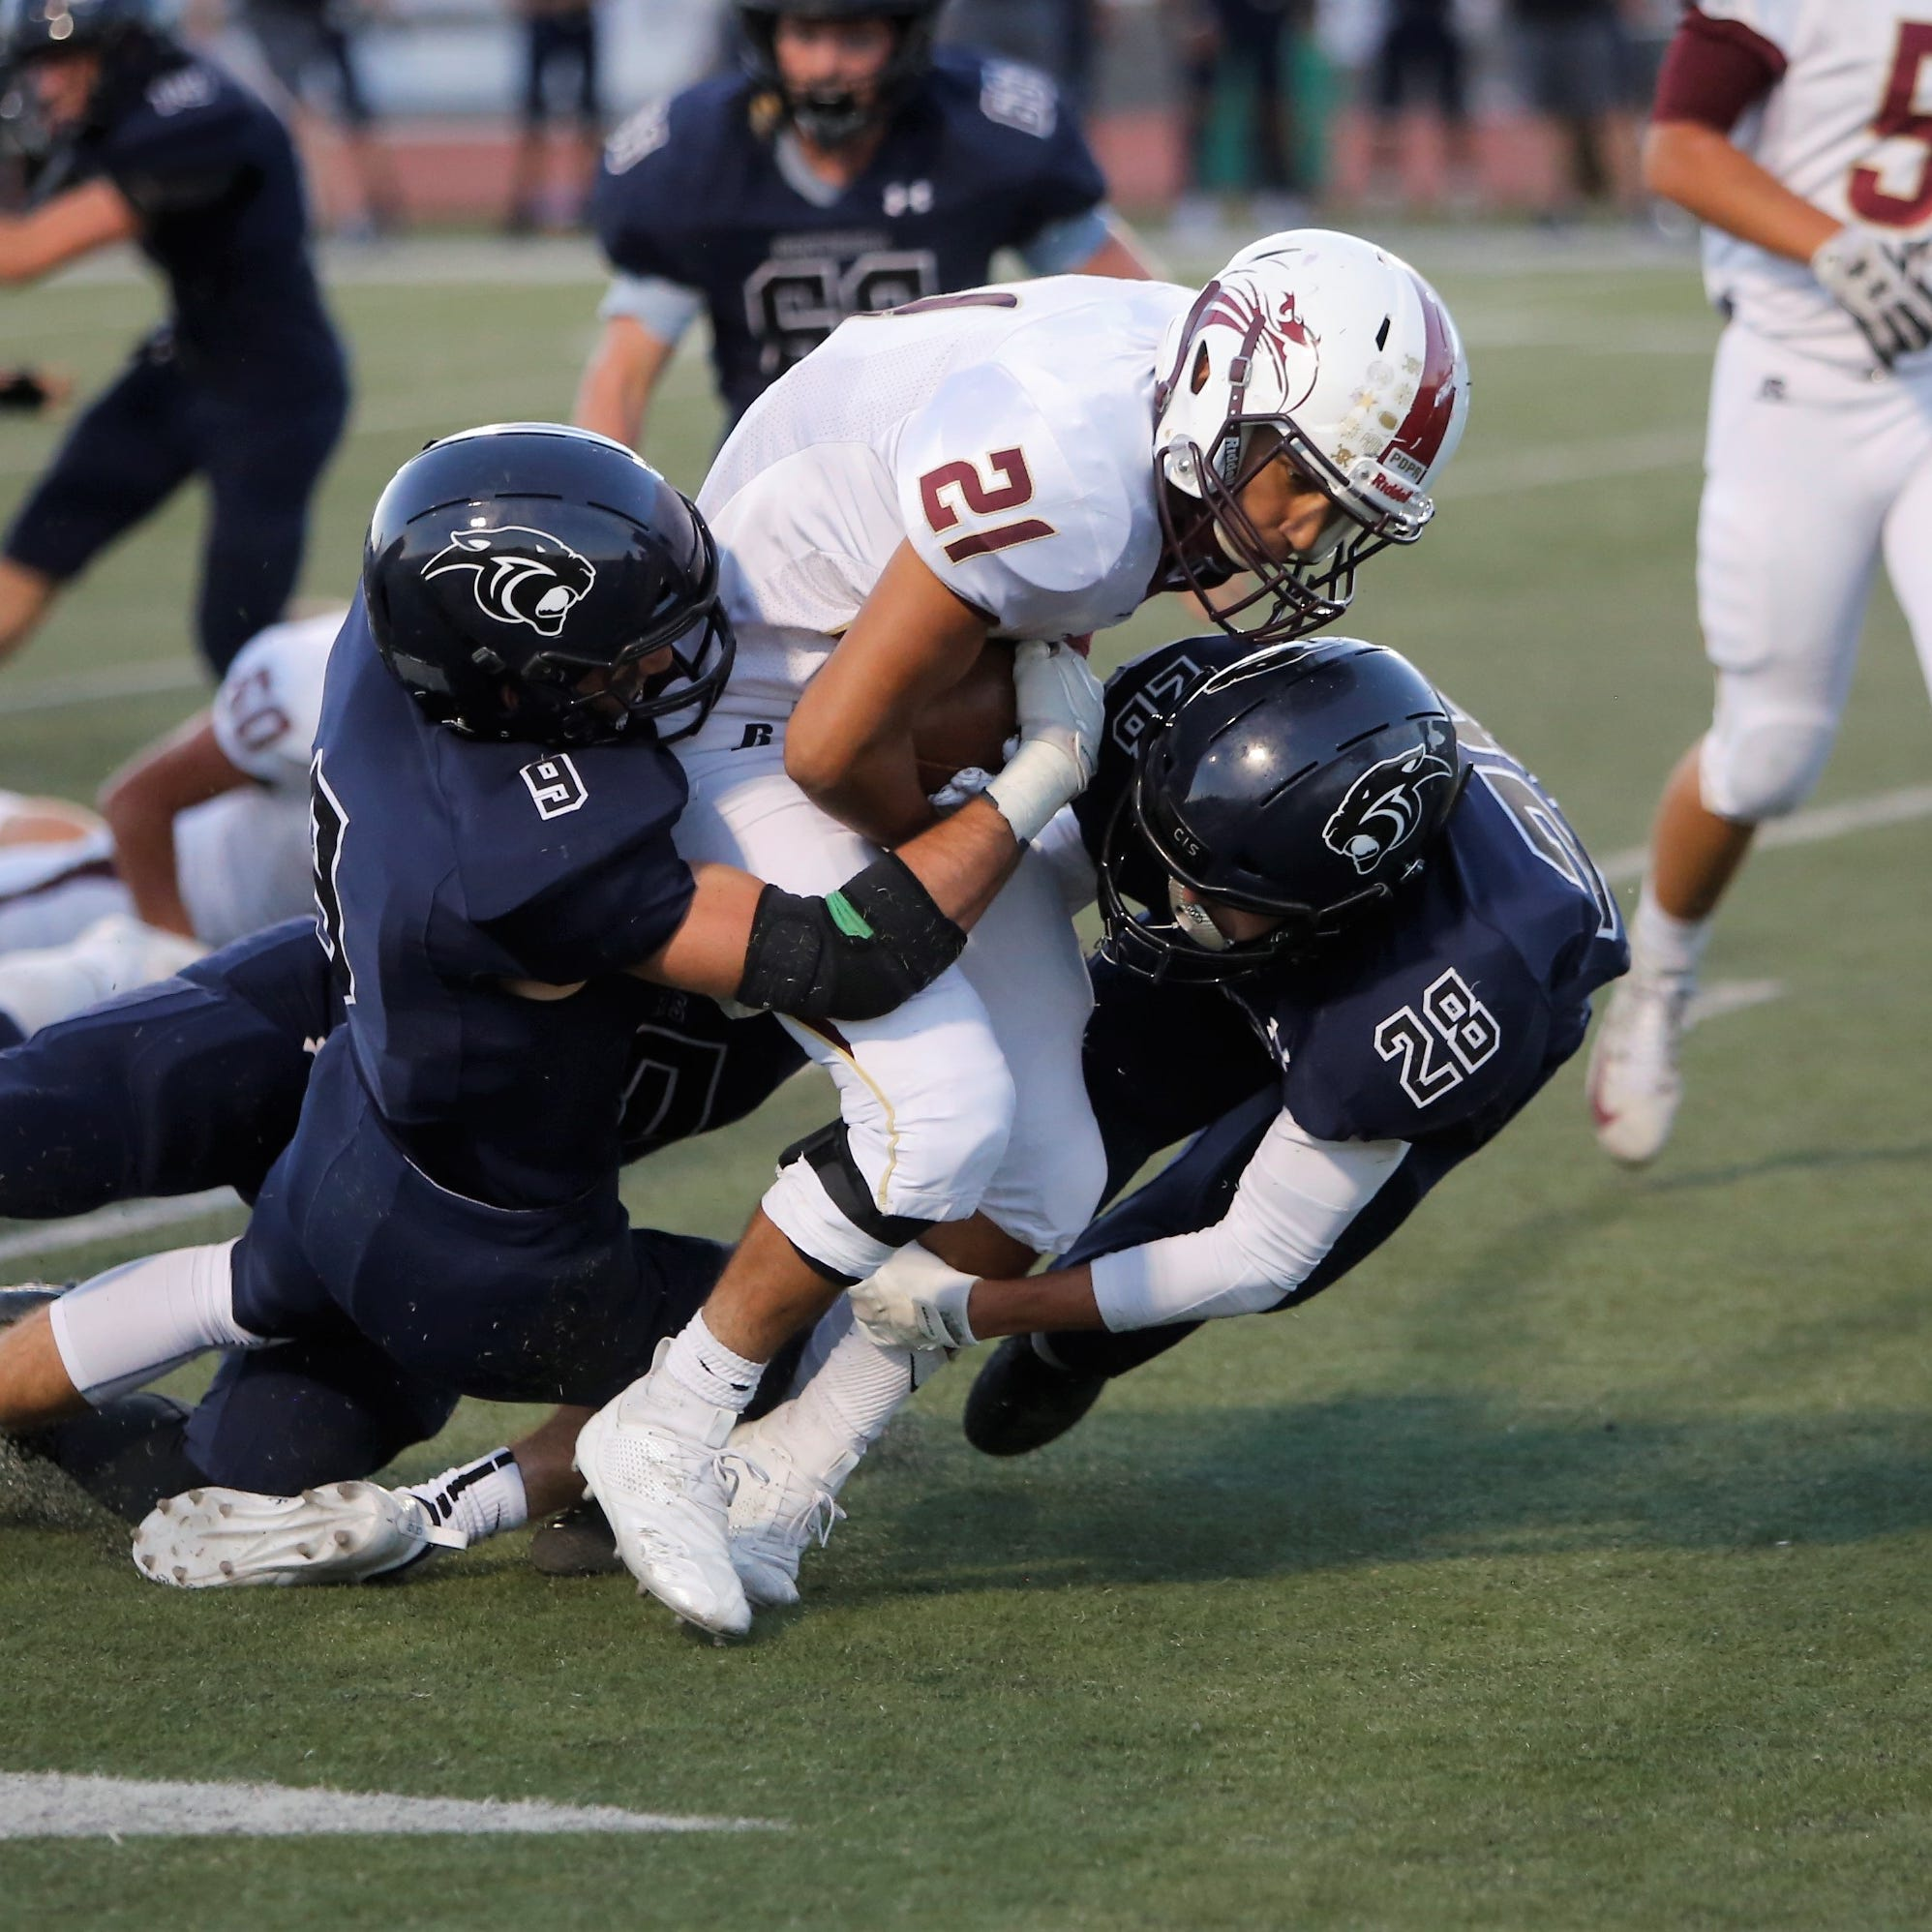 PV defense neutralizes Belen in key 5A bout